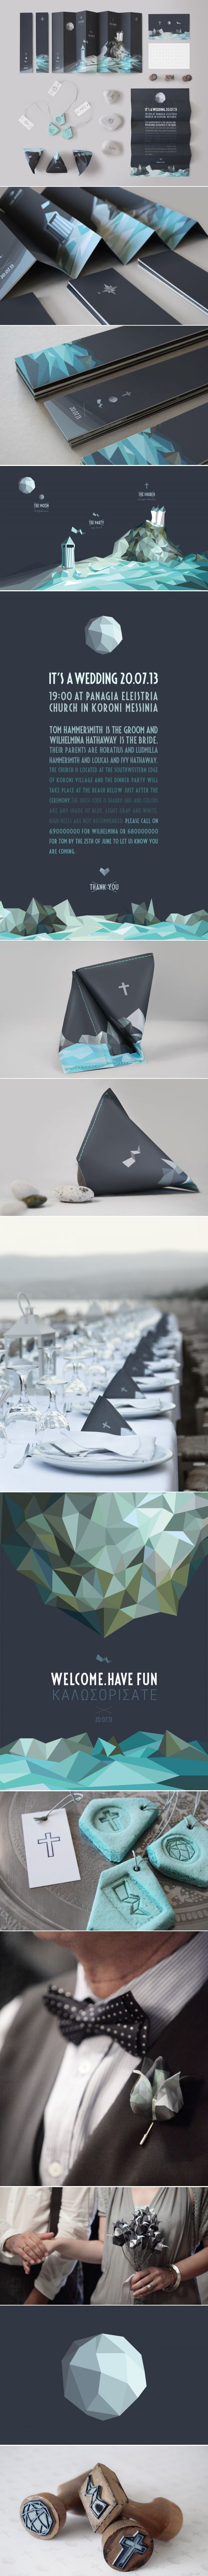 pinterest.com/fra411 #visual #identity - THE KORONI WEDDING